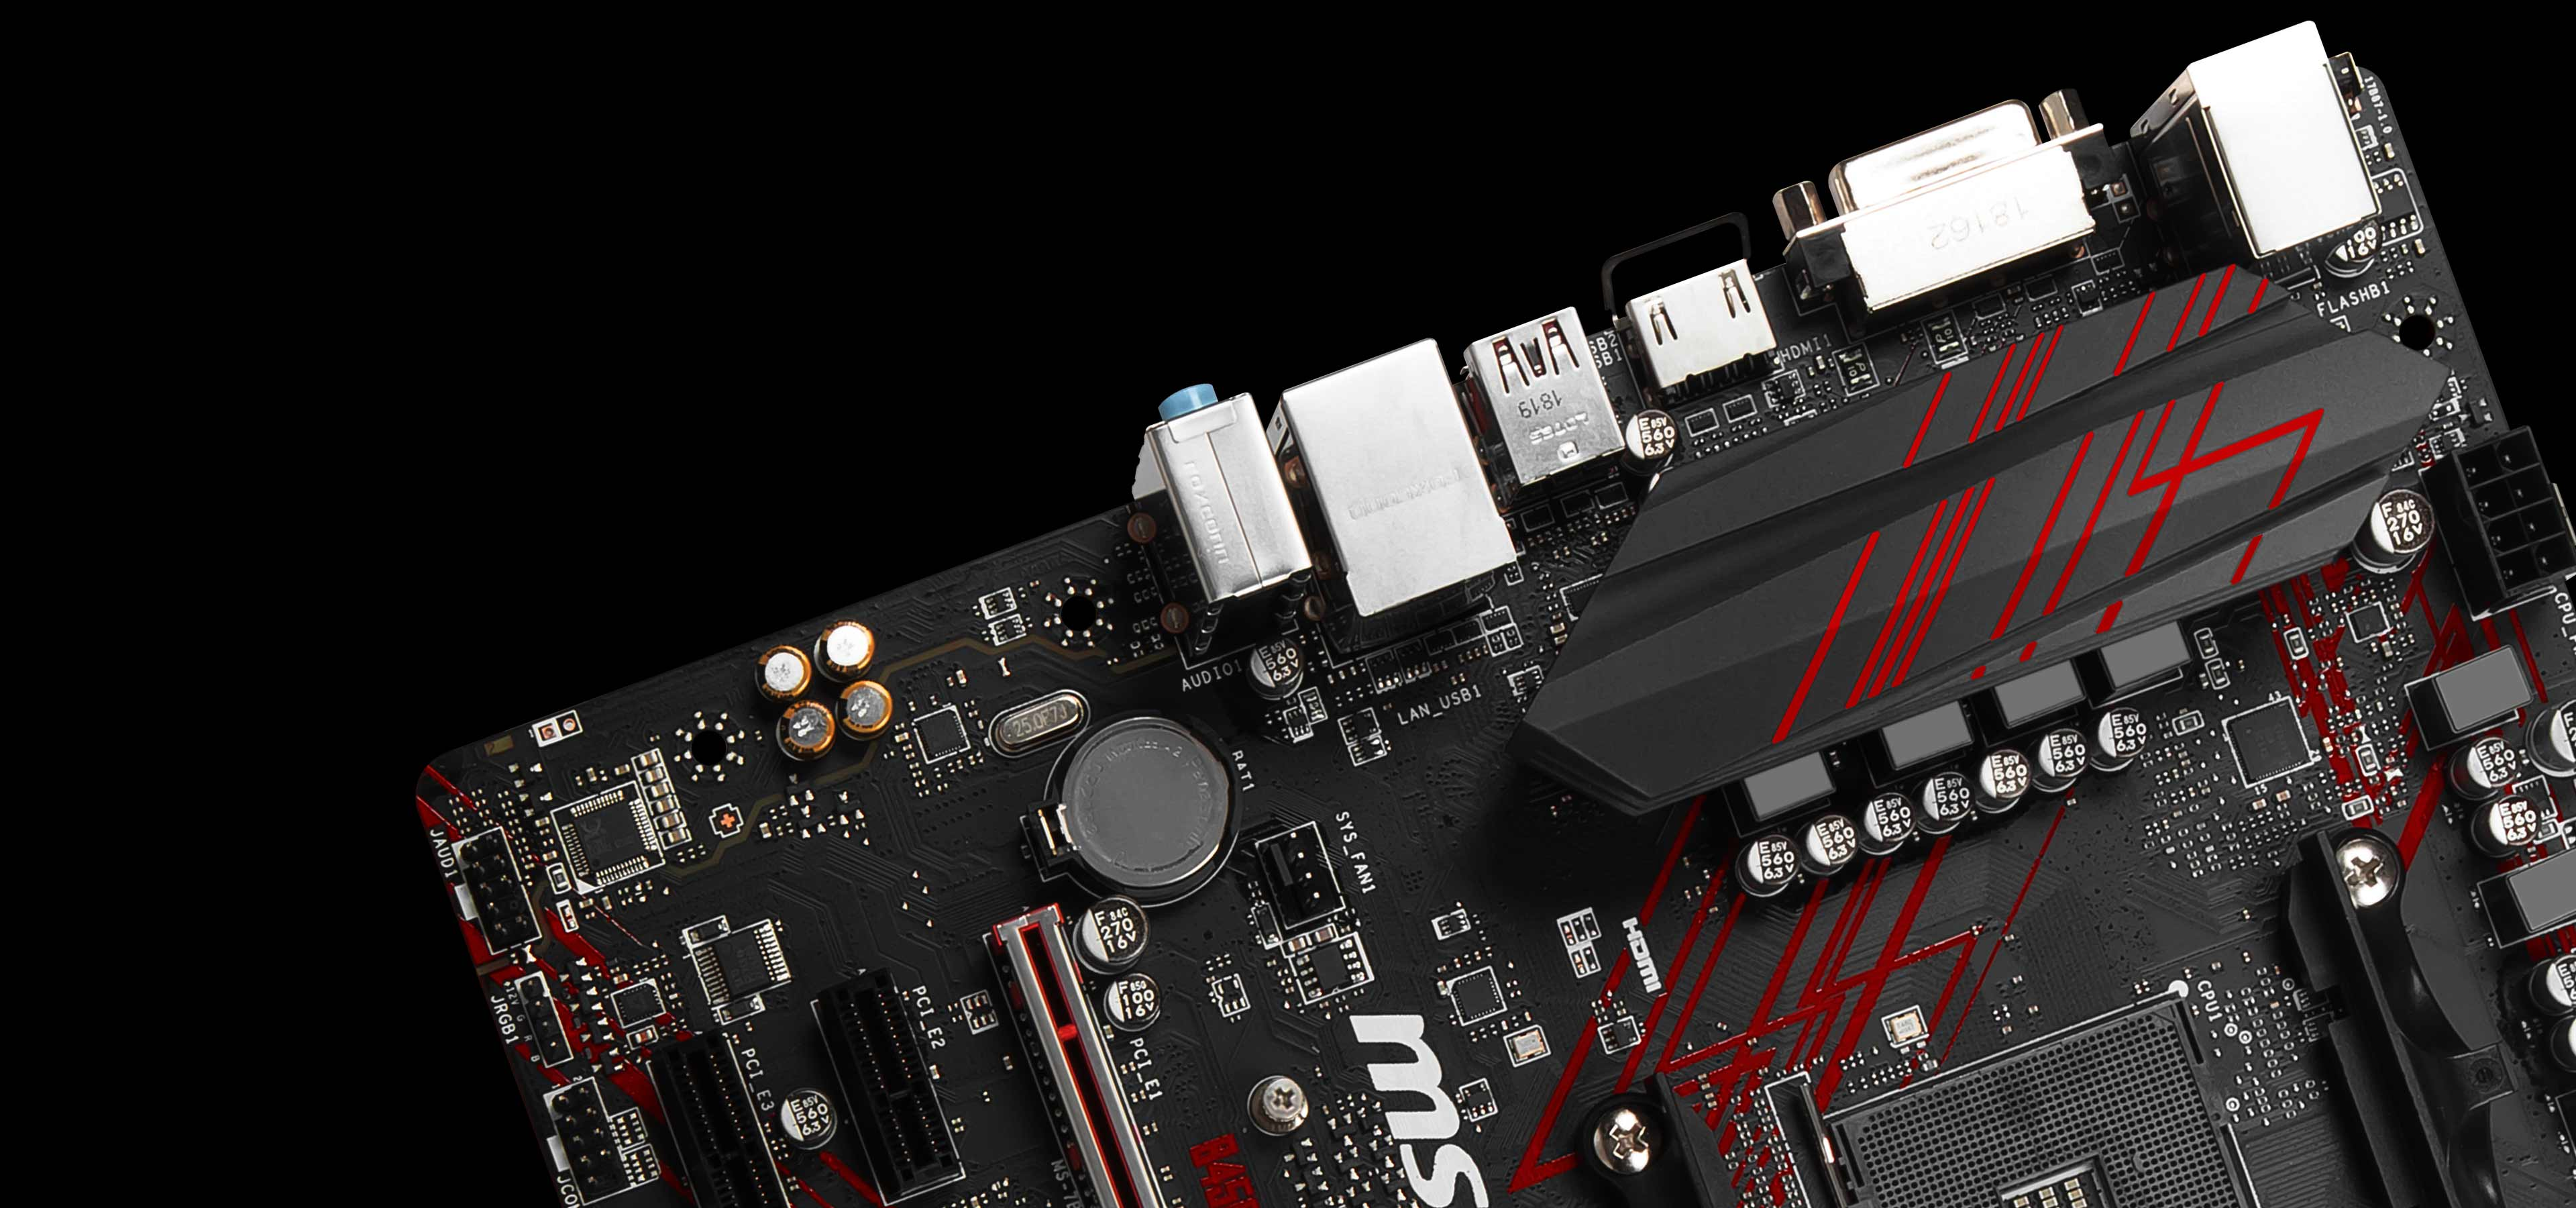 B450m Gaming Plus Motherboard The World Leader In V Star 950 Wiring Diagram Using Only Finest Quality Components And Integrating Latest Technological Innovations Delivers Best Possible Professional Experience